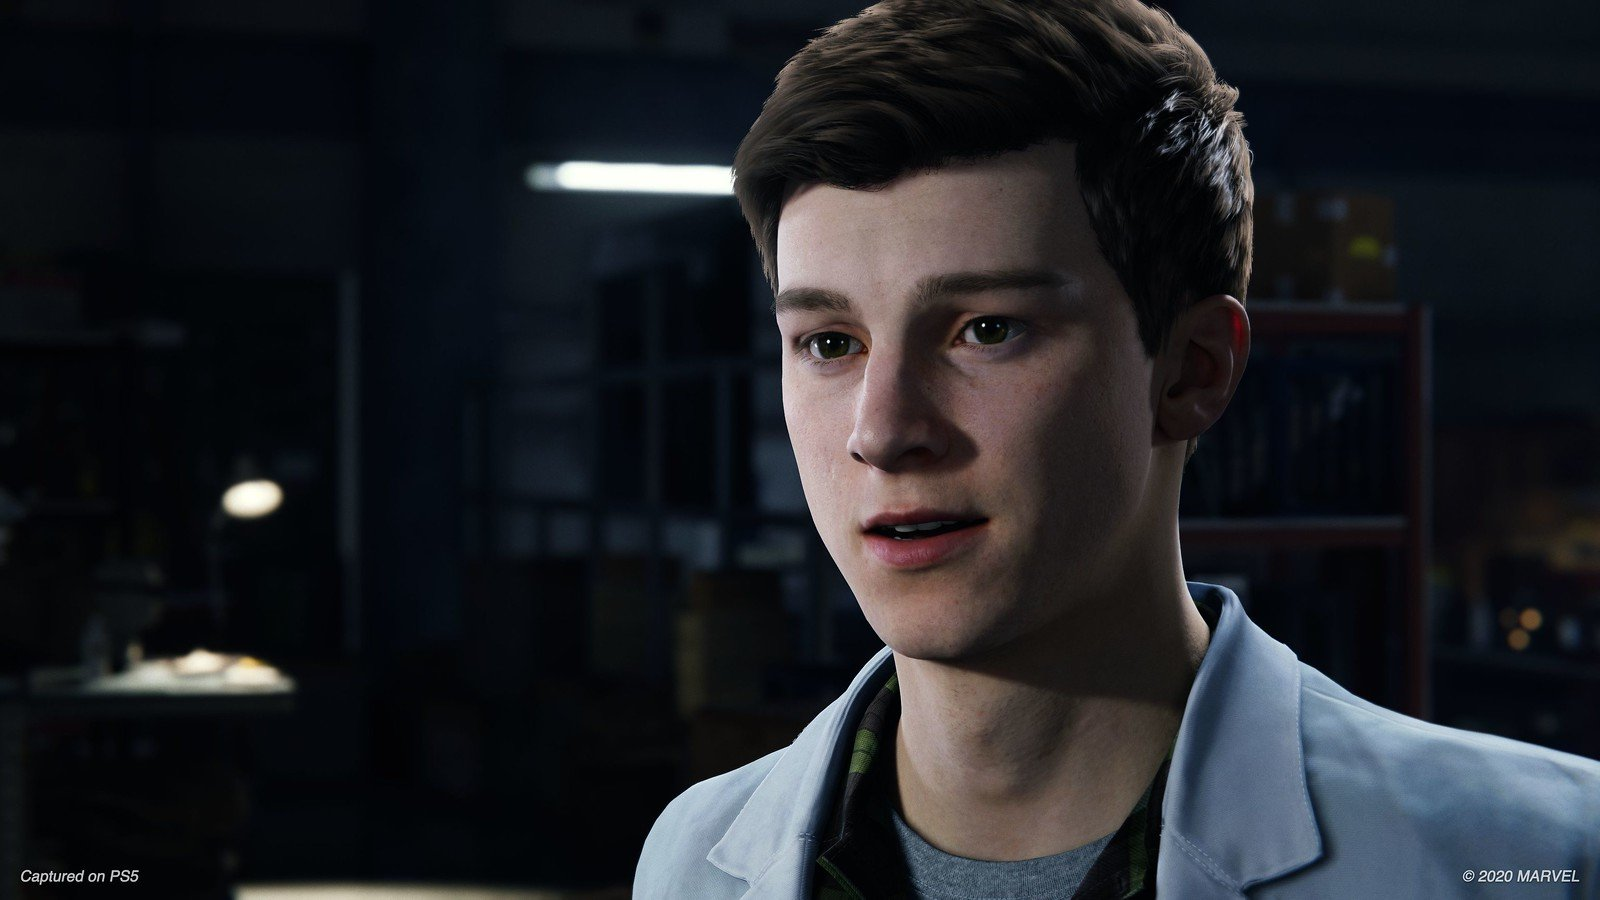 peter parker spider man remastered - Spider-Man Remastered sur PS5 : Peter Parker change de visage